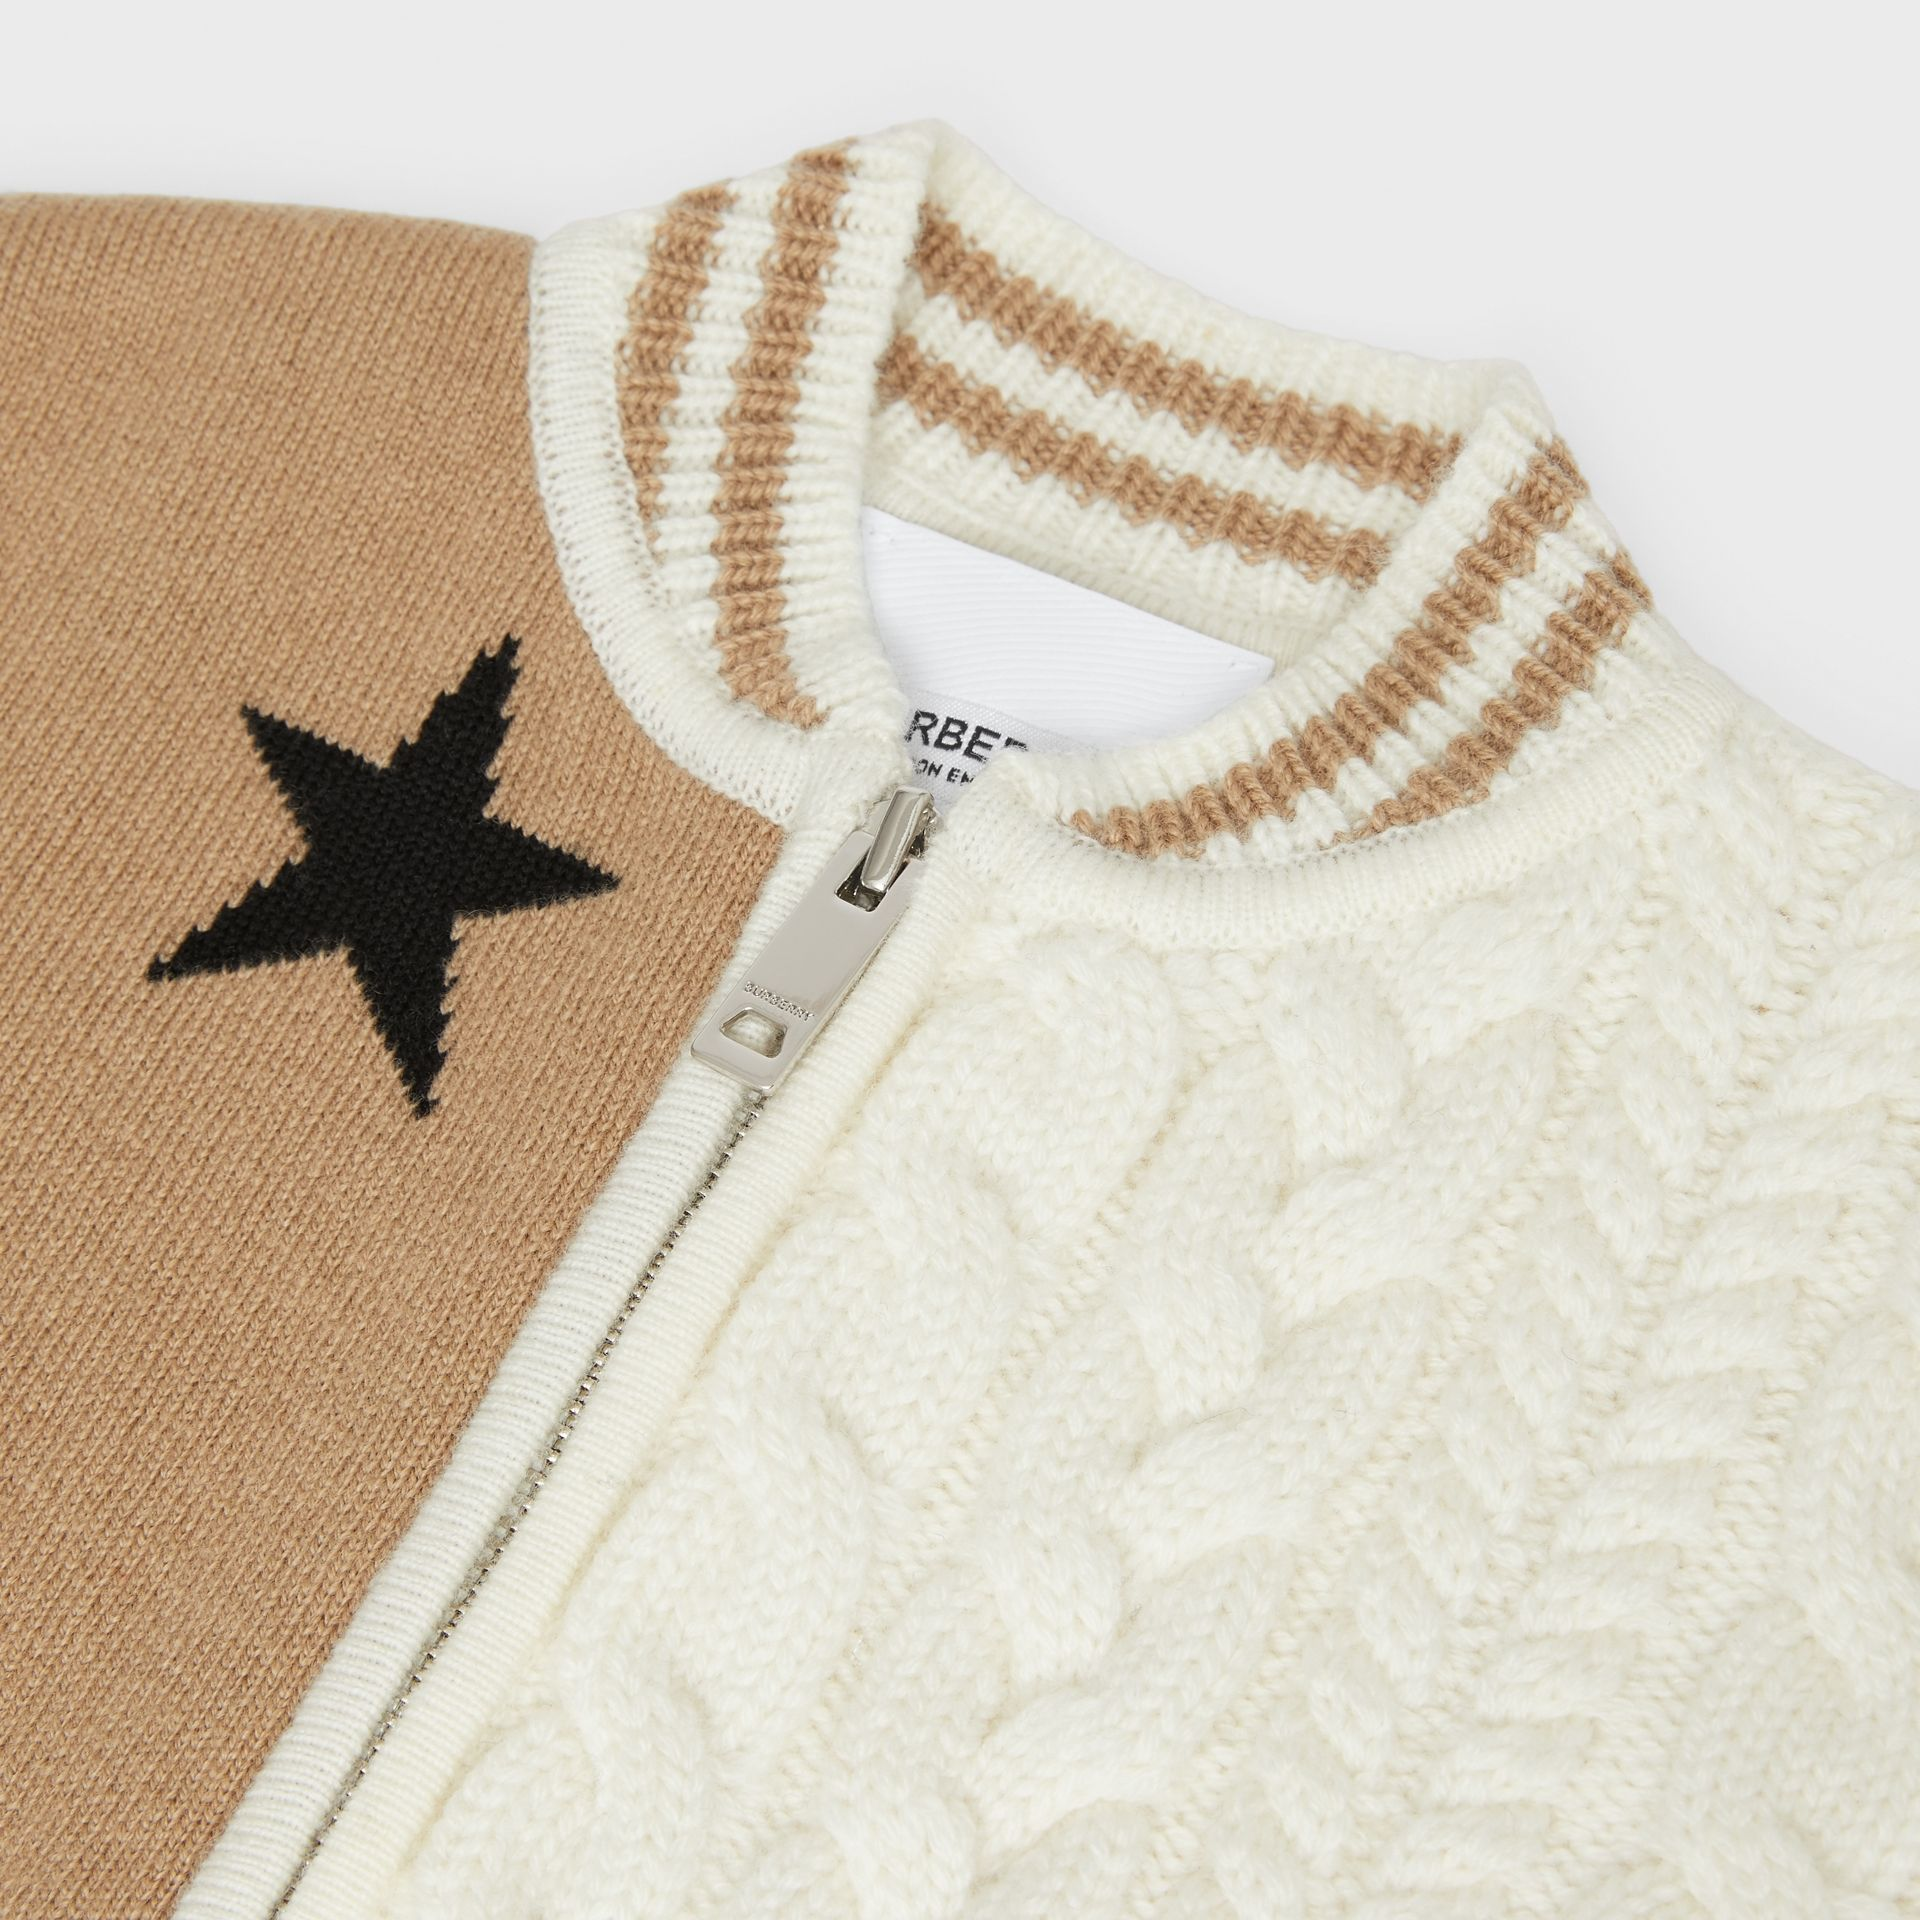 Star and Monogram Motif Wool Cashmere Blend Jacket in Archive Beige - Children | Burberry Canada - gallery image 1